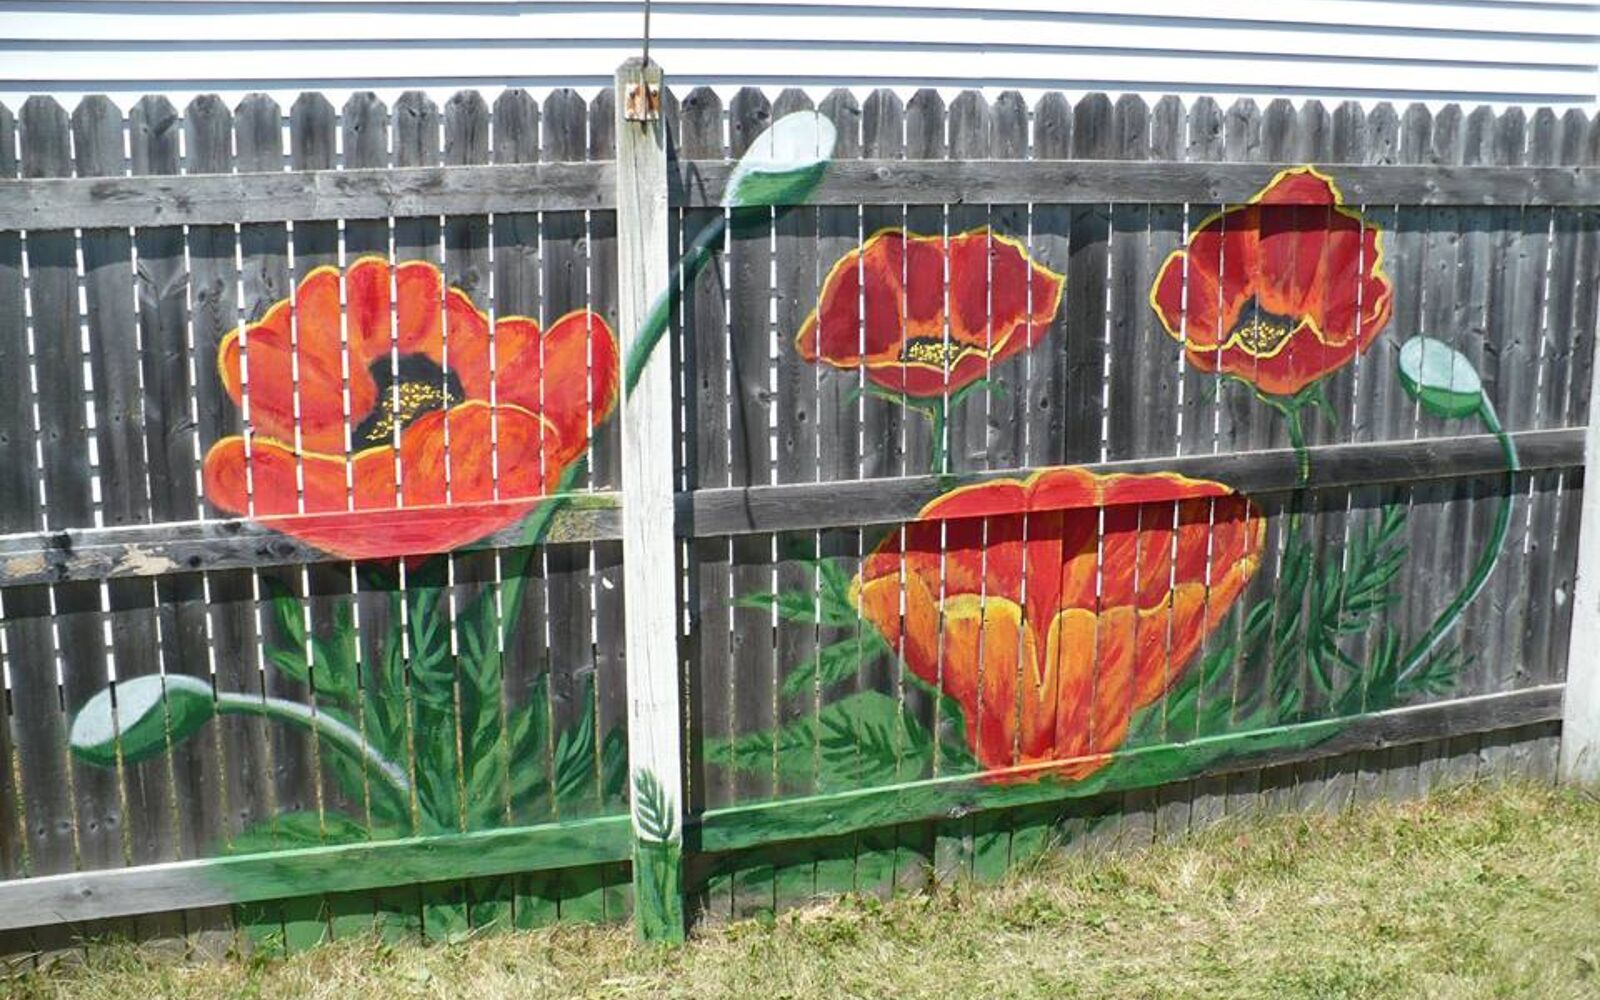 s upgrade your backyard with these 30 clever ideas, Beautify your fence with a paint makeover